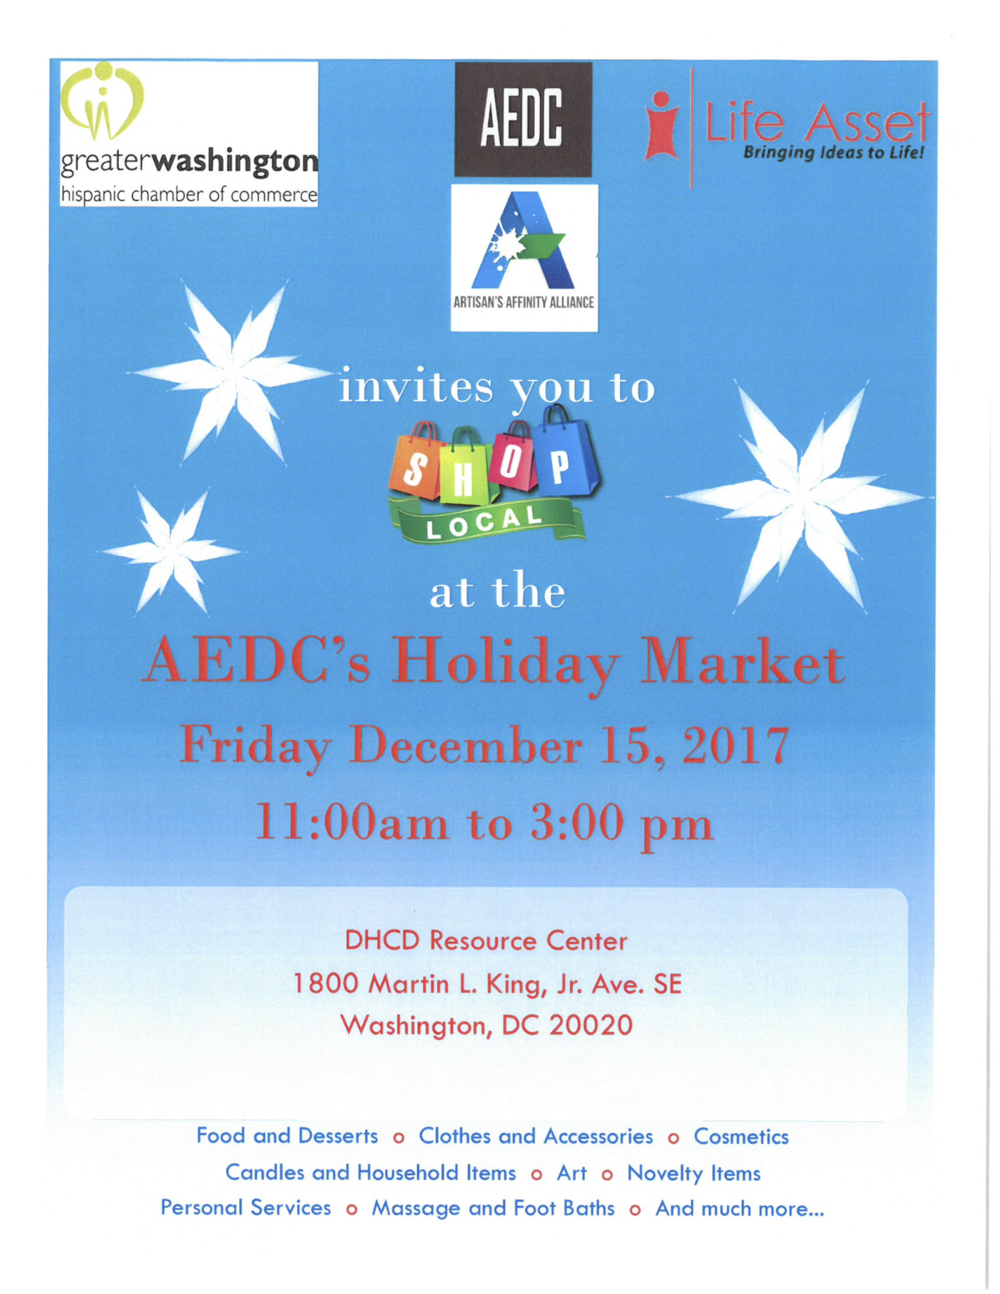 AEDC Holiday Market Flier - 12-15-17.png